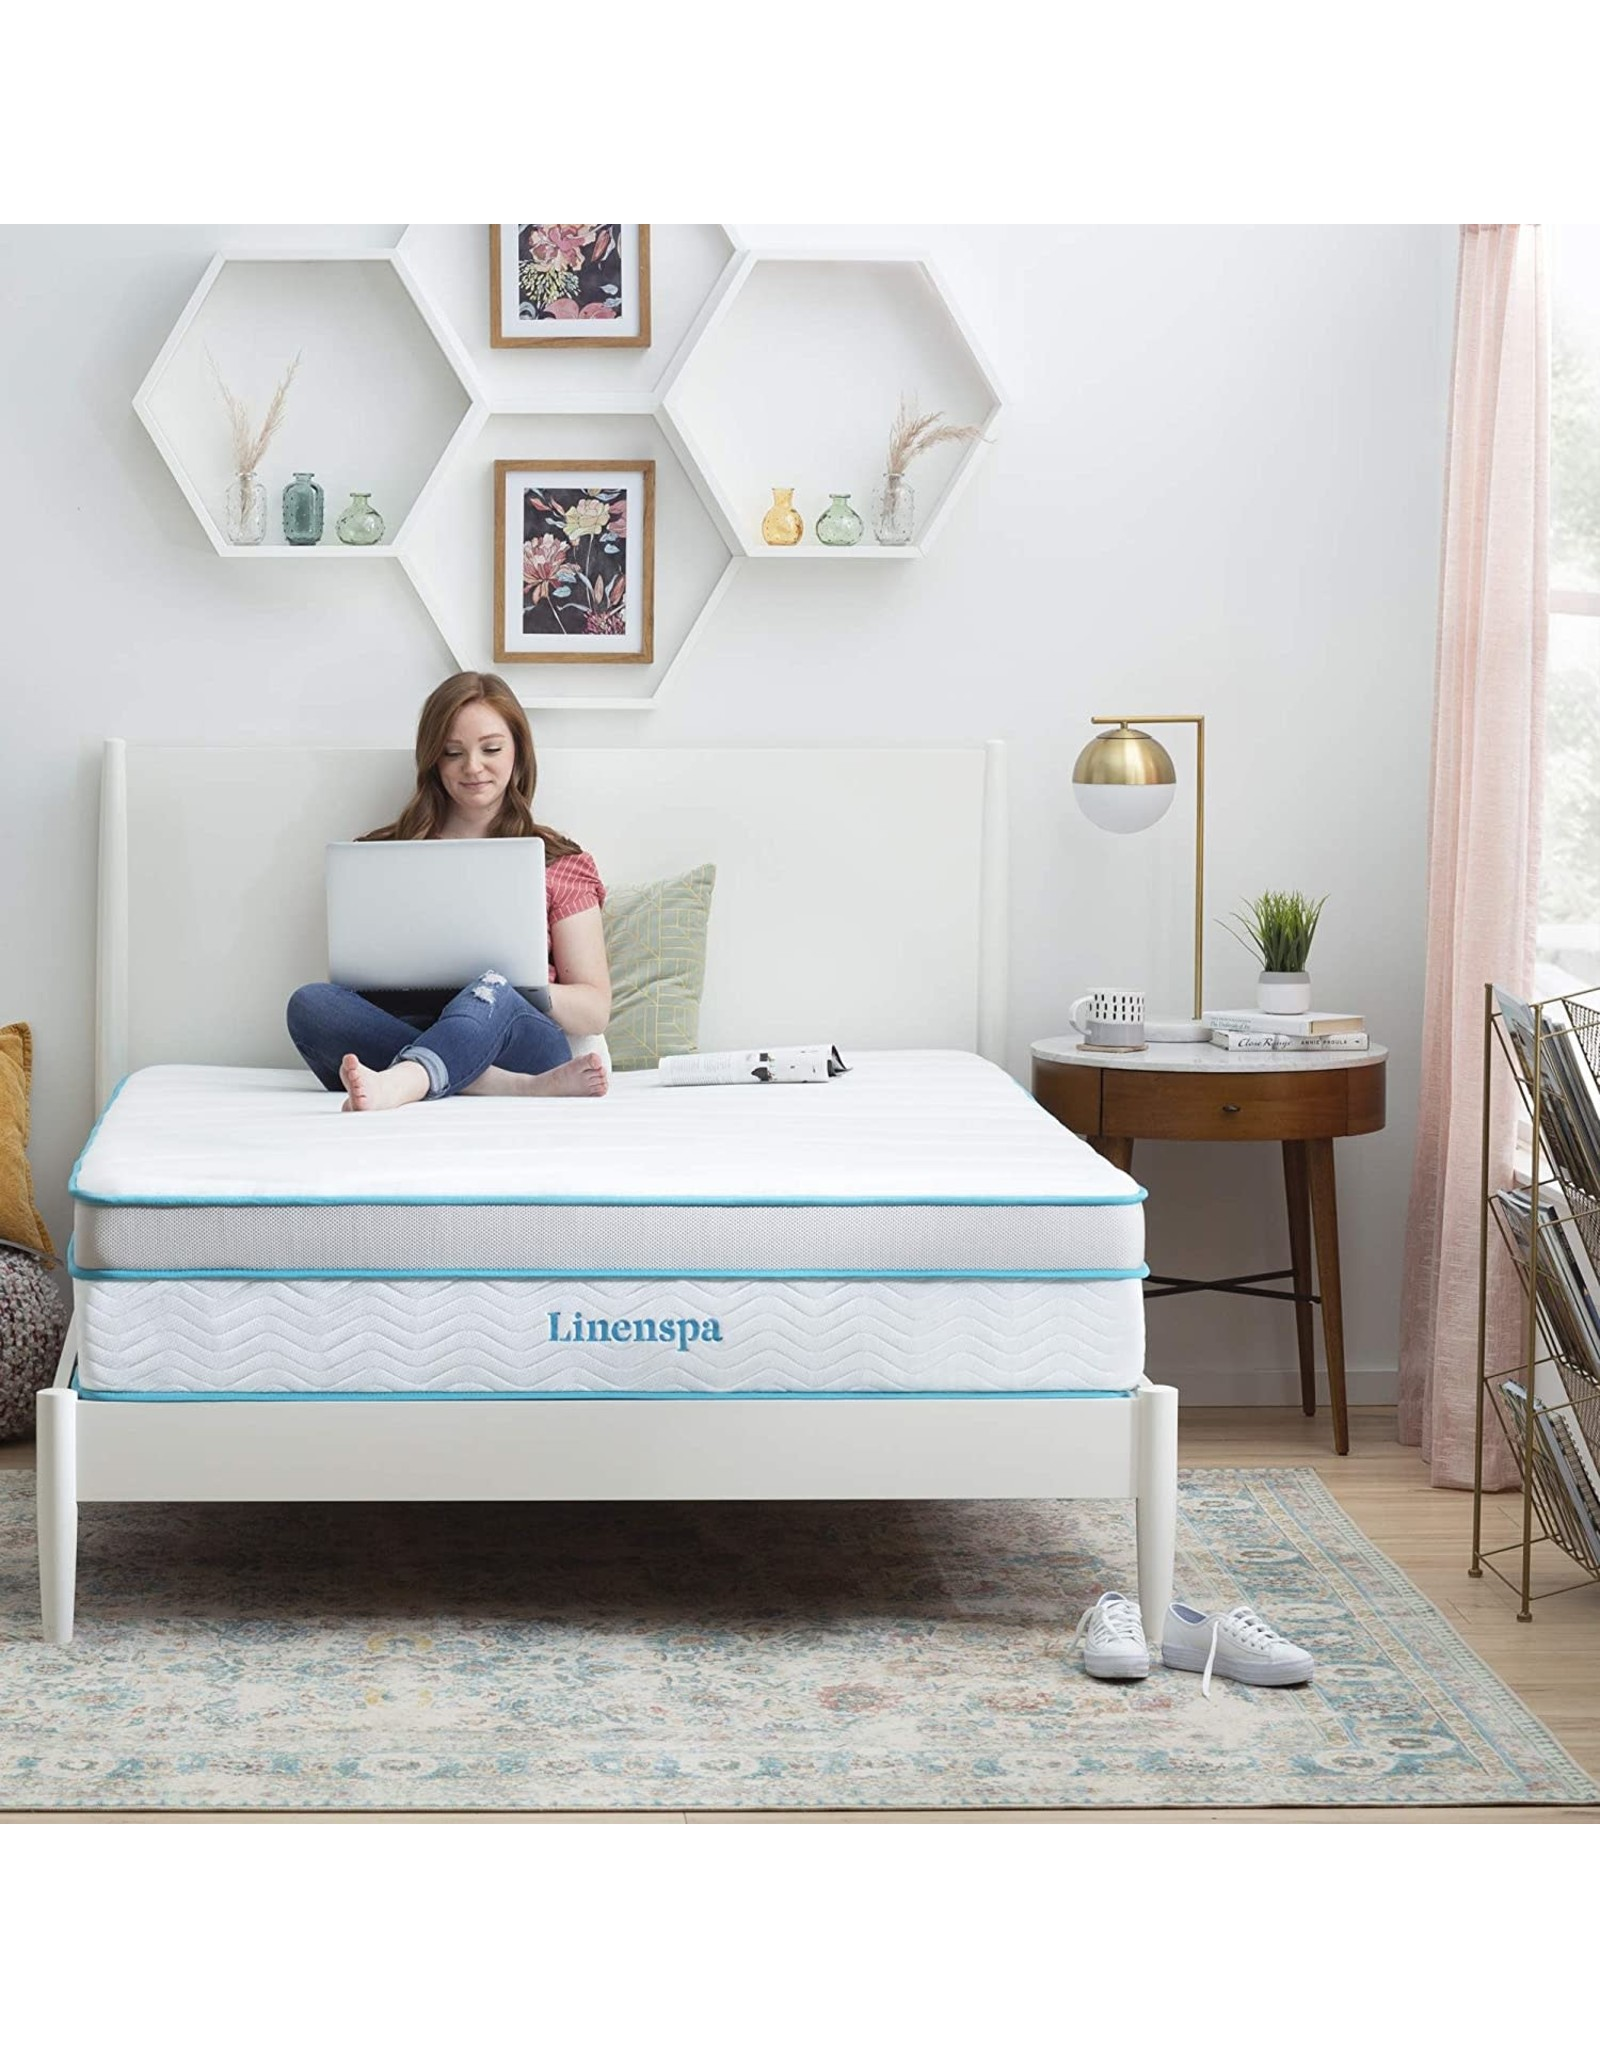 Linenspa Linenspa 12 Inch Memory Hybrid Plush-Individually Encased Coils-Edge Support-Quilted Foam Cover Mattress, King, White